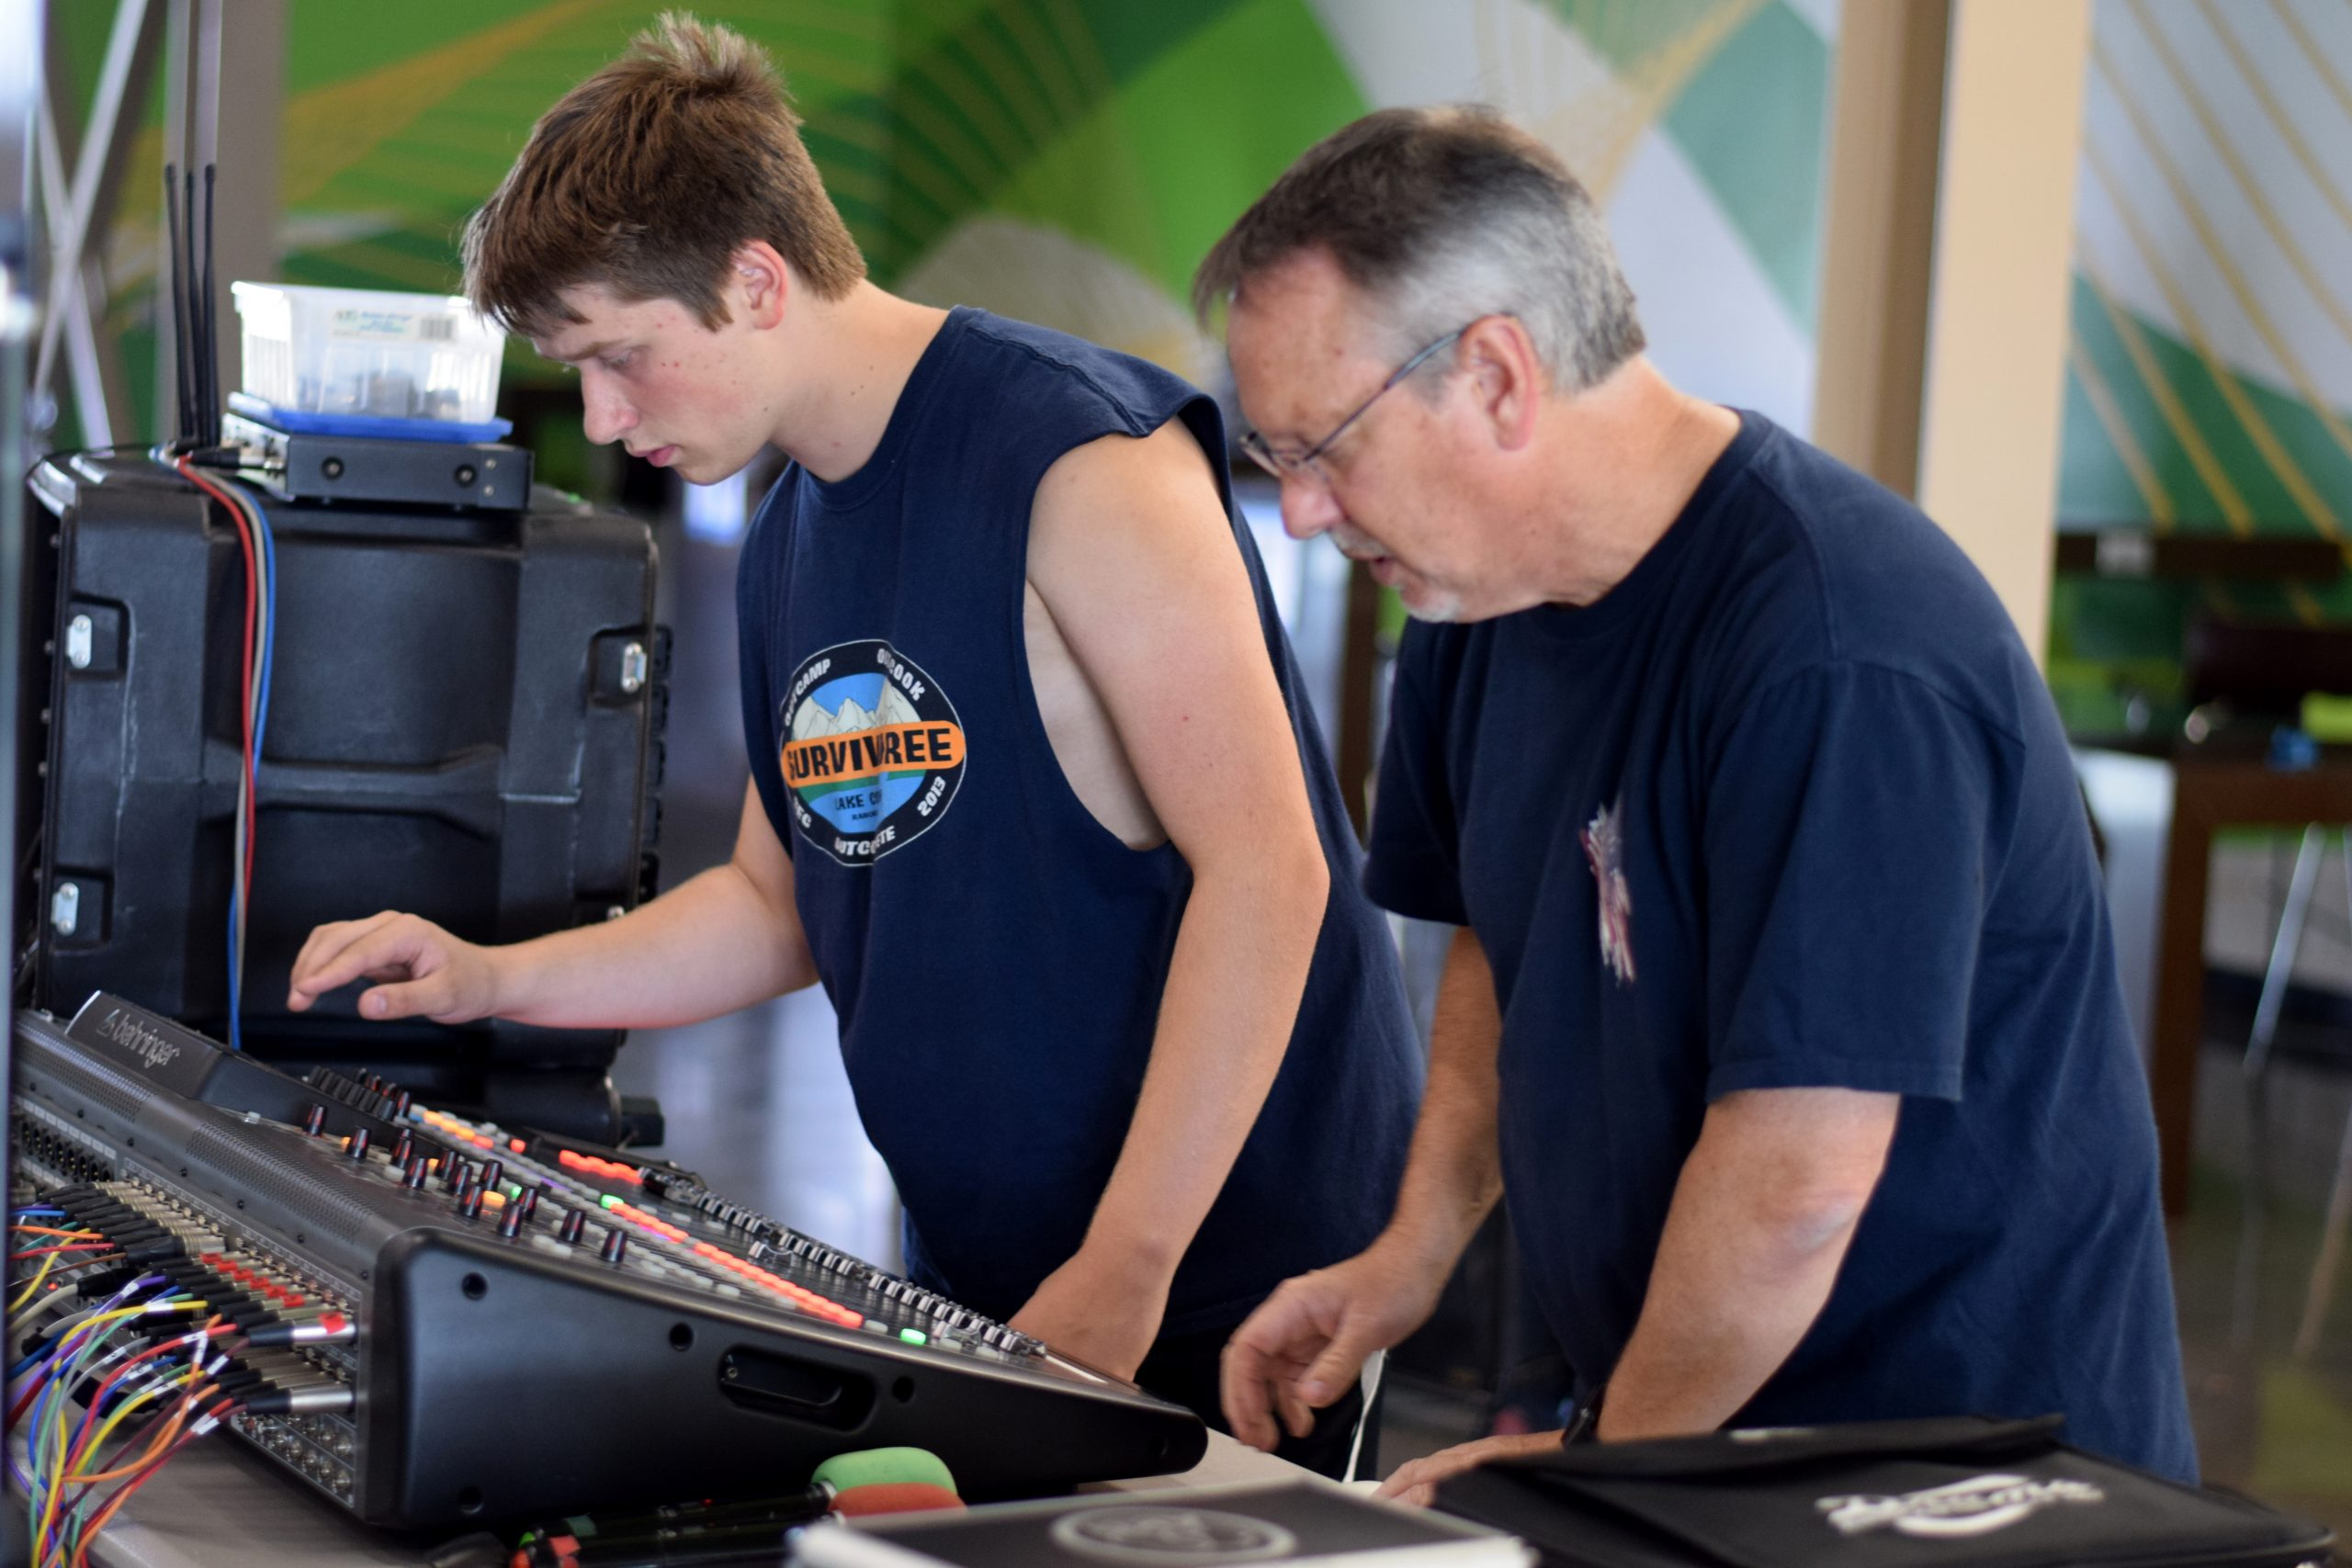 Image of recording arts student with advisor, Jim White, working on sound board together